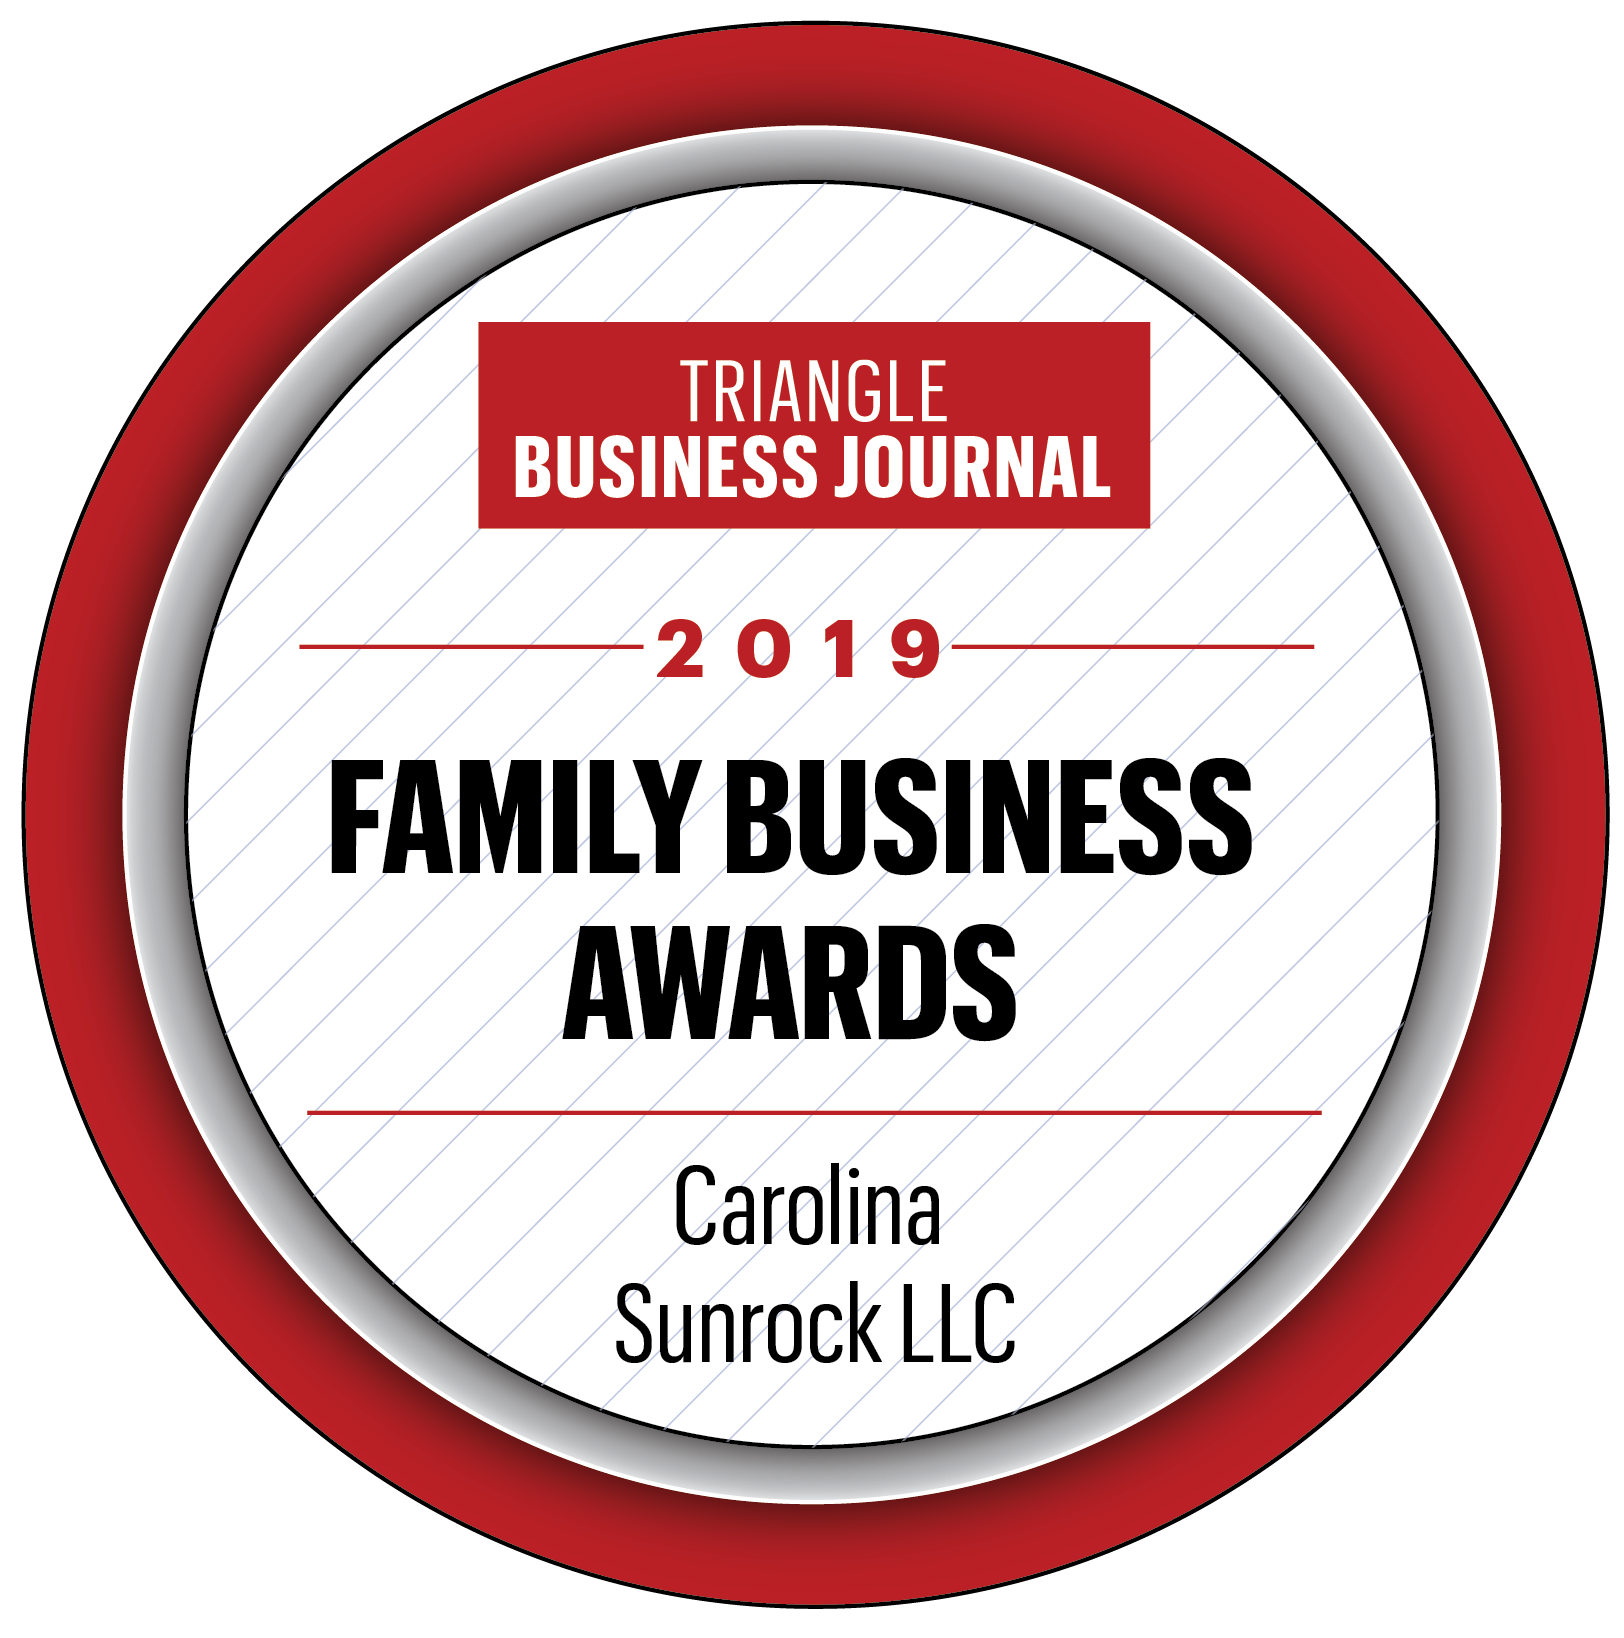 Triangle Business Journal 2019 Family Business Award for Carolina Sunrock LLC